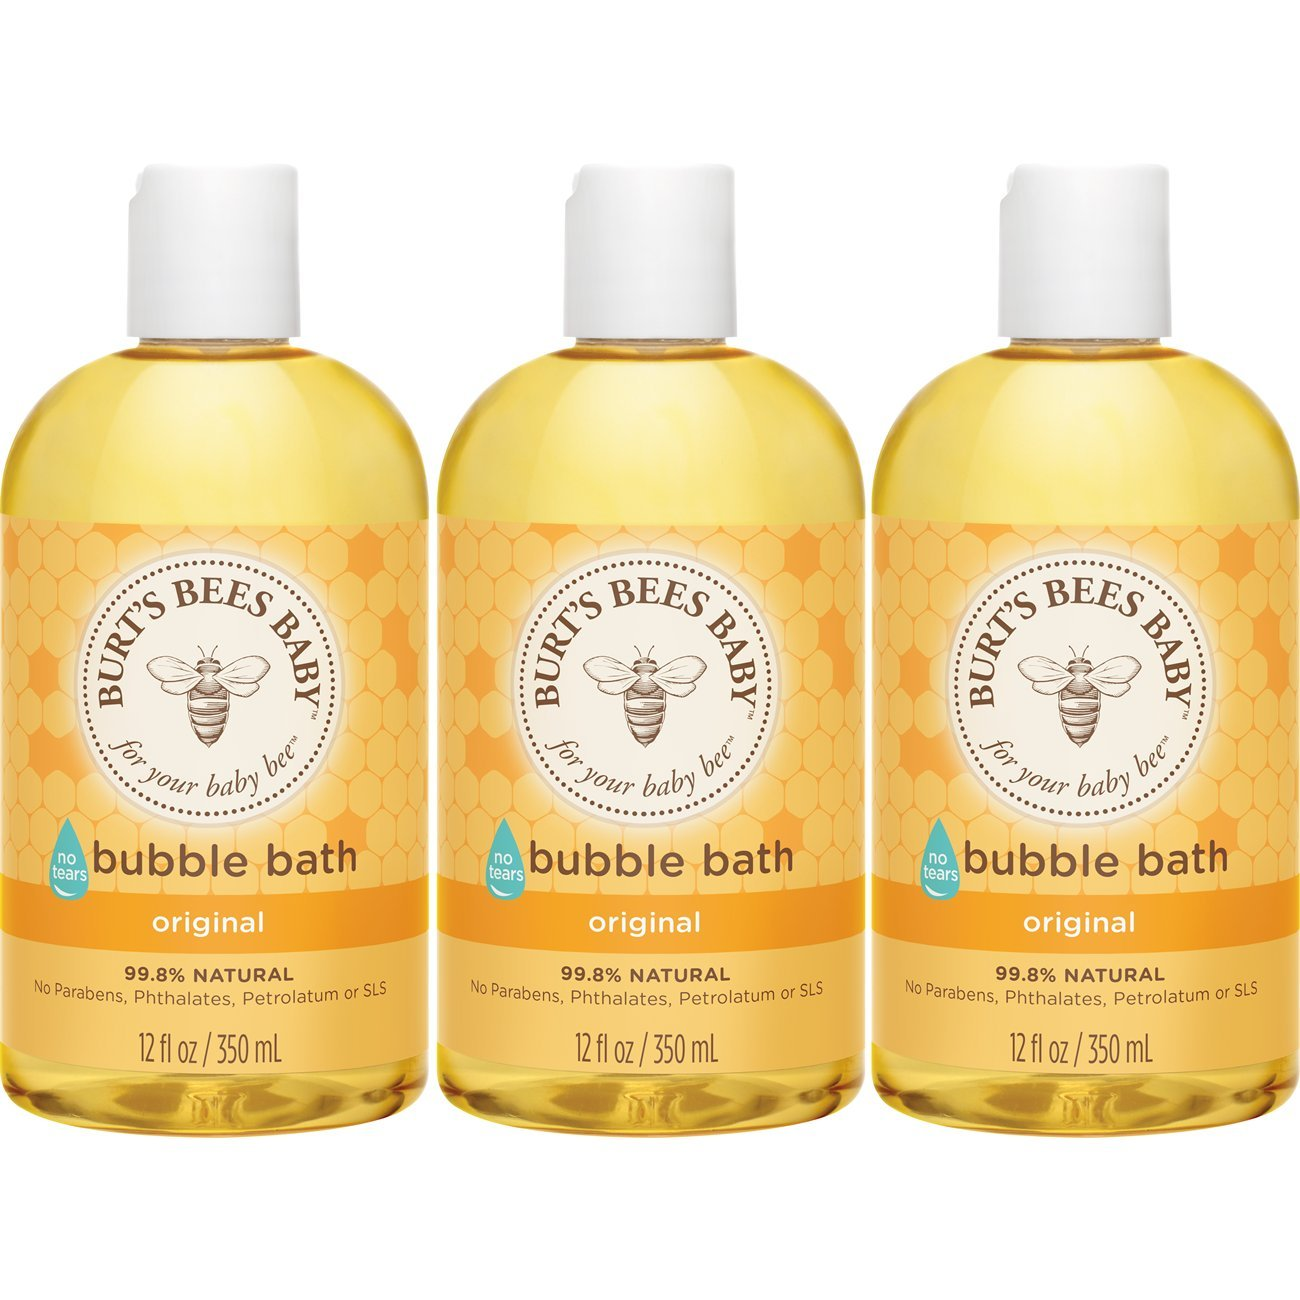 Burt's Bees Baby Bubble Bath, 12 Ounces (Pack of 3) Burt' s Bees hbf-jjj-omgh-mh3164